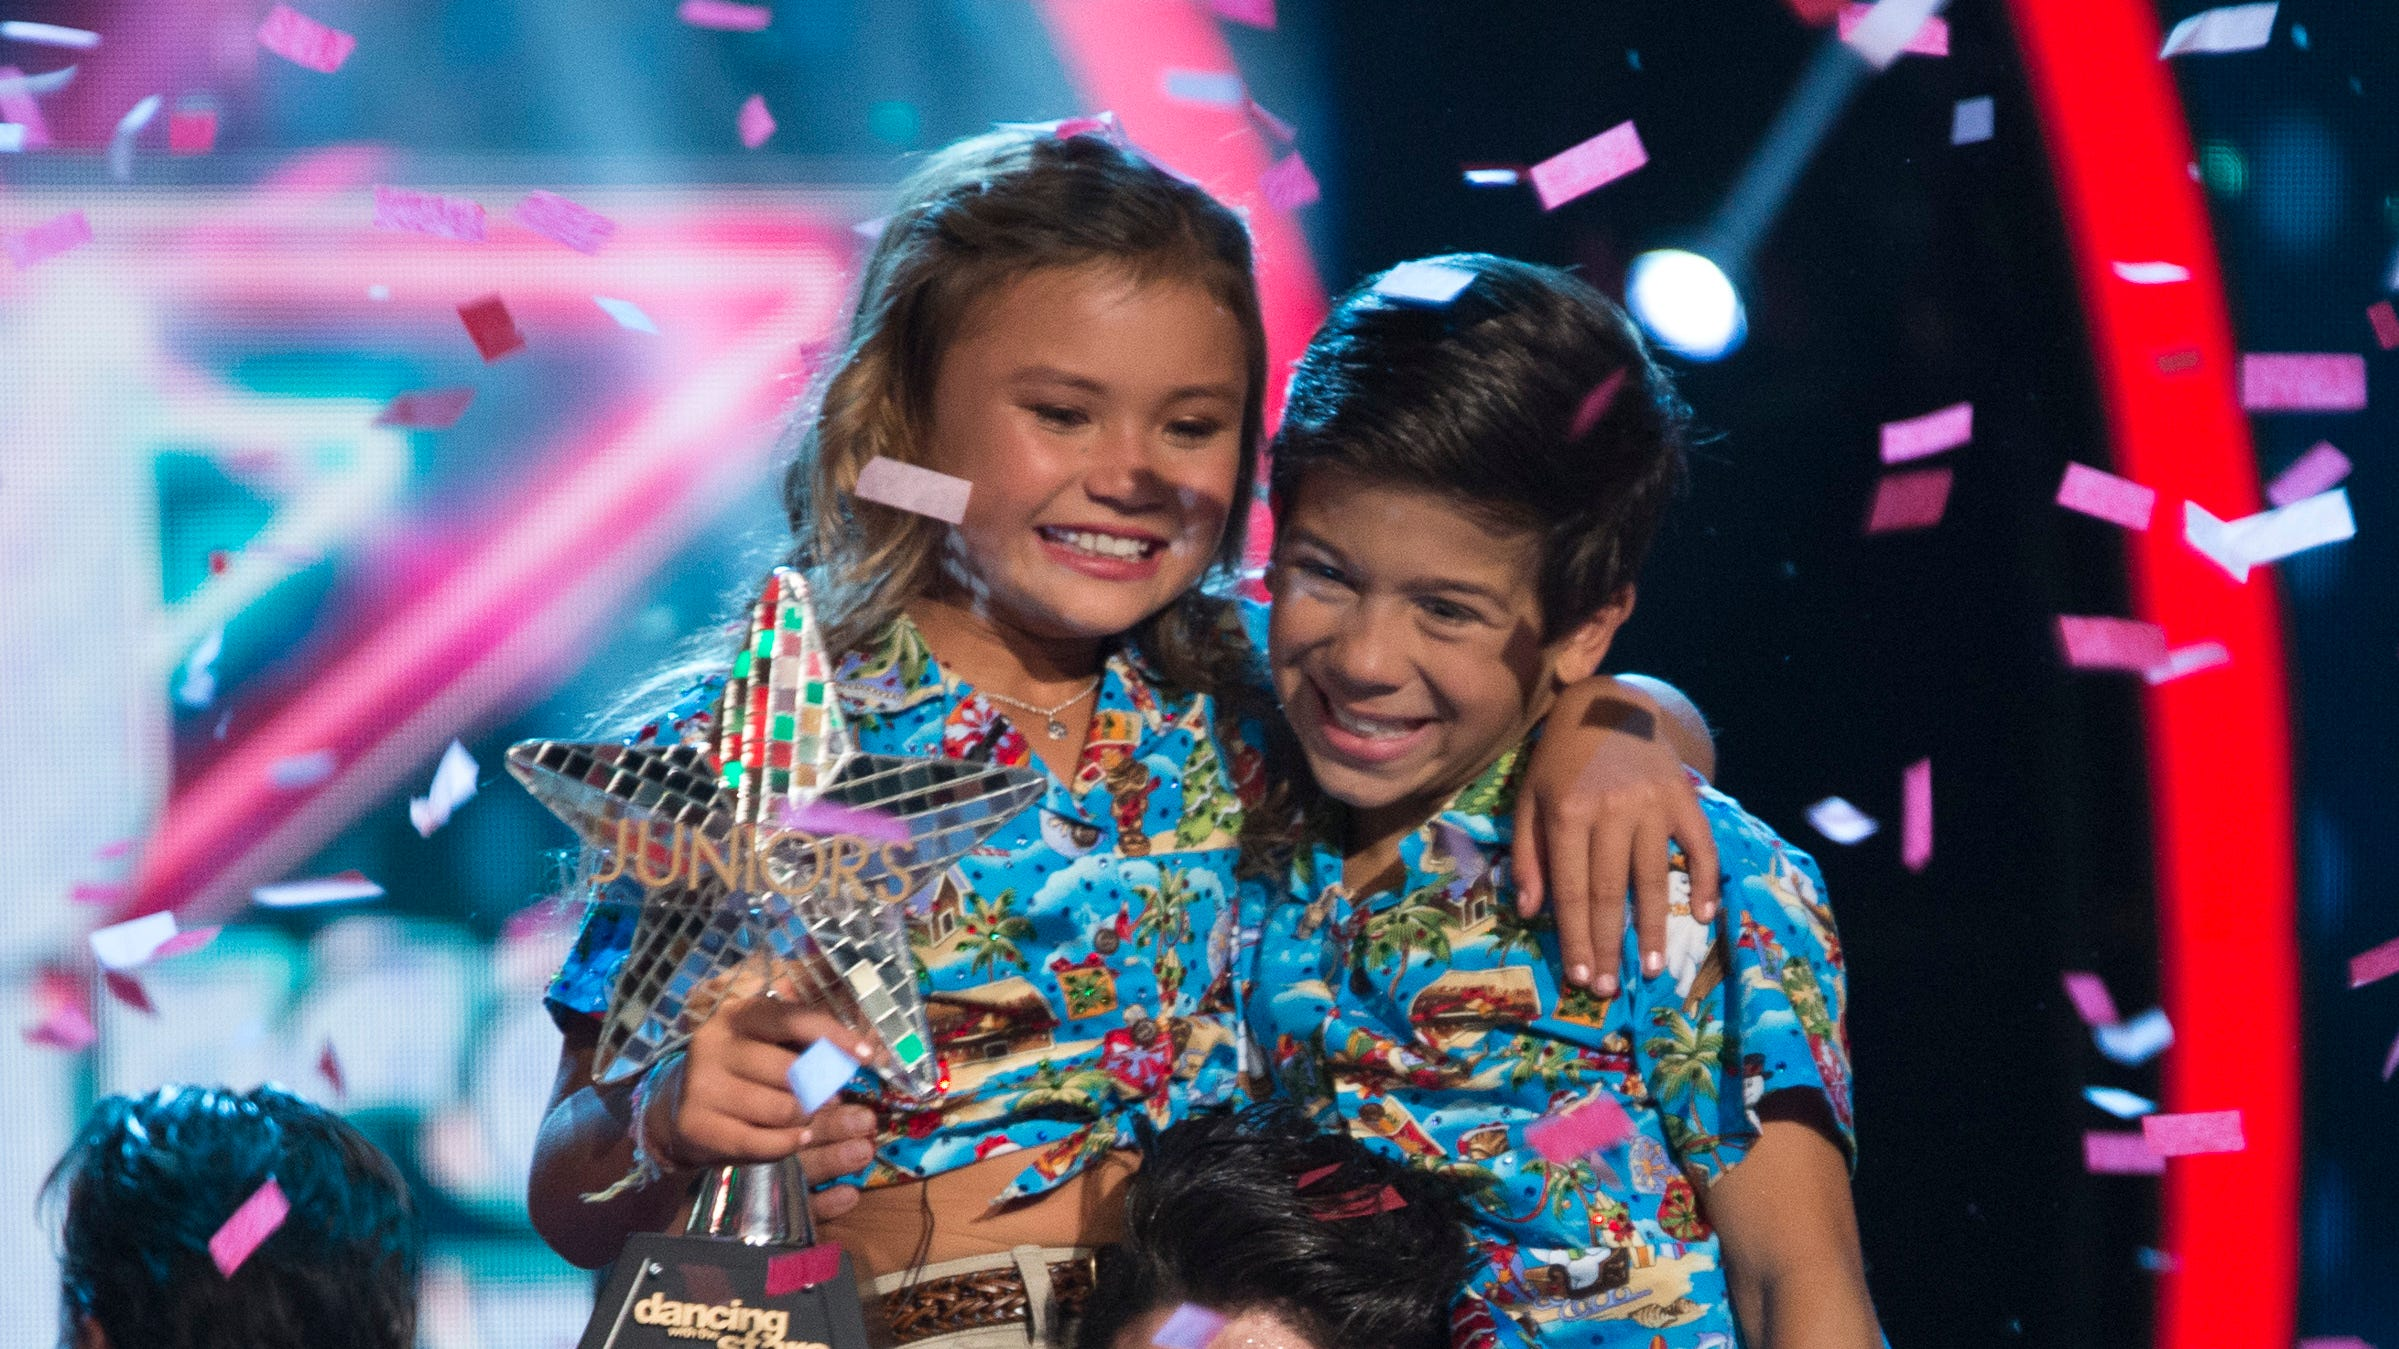 Dancing with the Stars: Juniors' winners are Sky Brown and JT Church